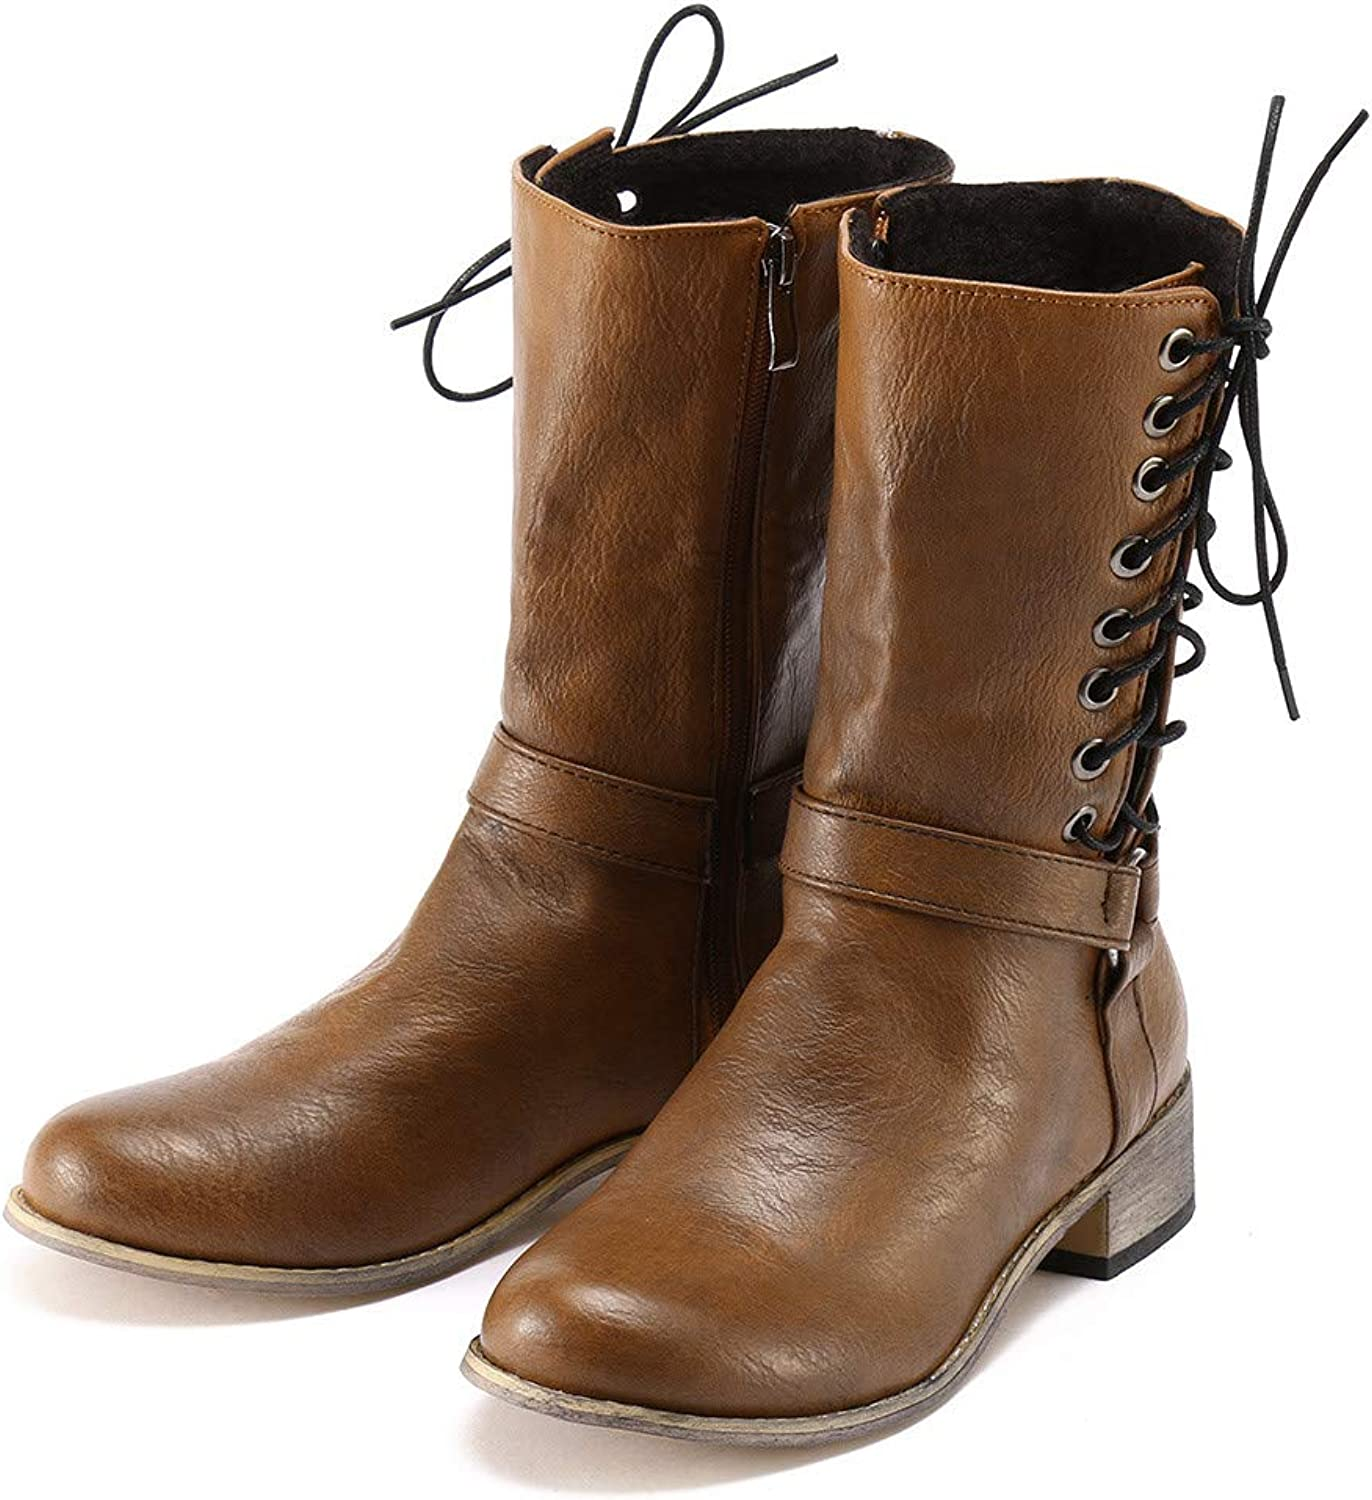 Women's Retro Pleated Care Ankle Boots, Soft Comfortable Durable Low Heel Non-Slip Zipper Knight shoes